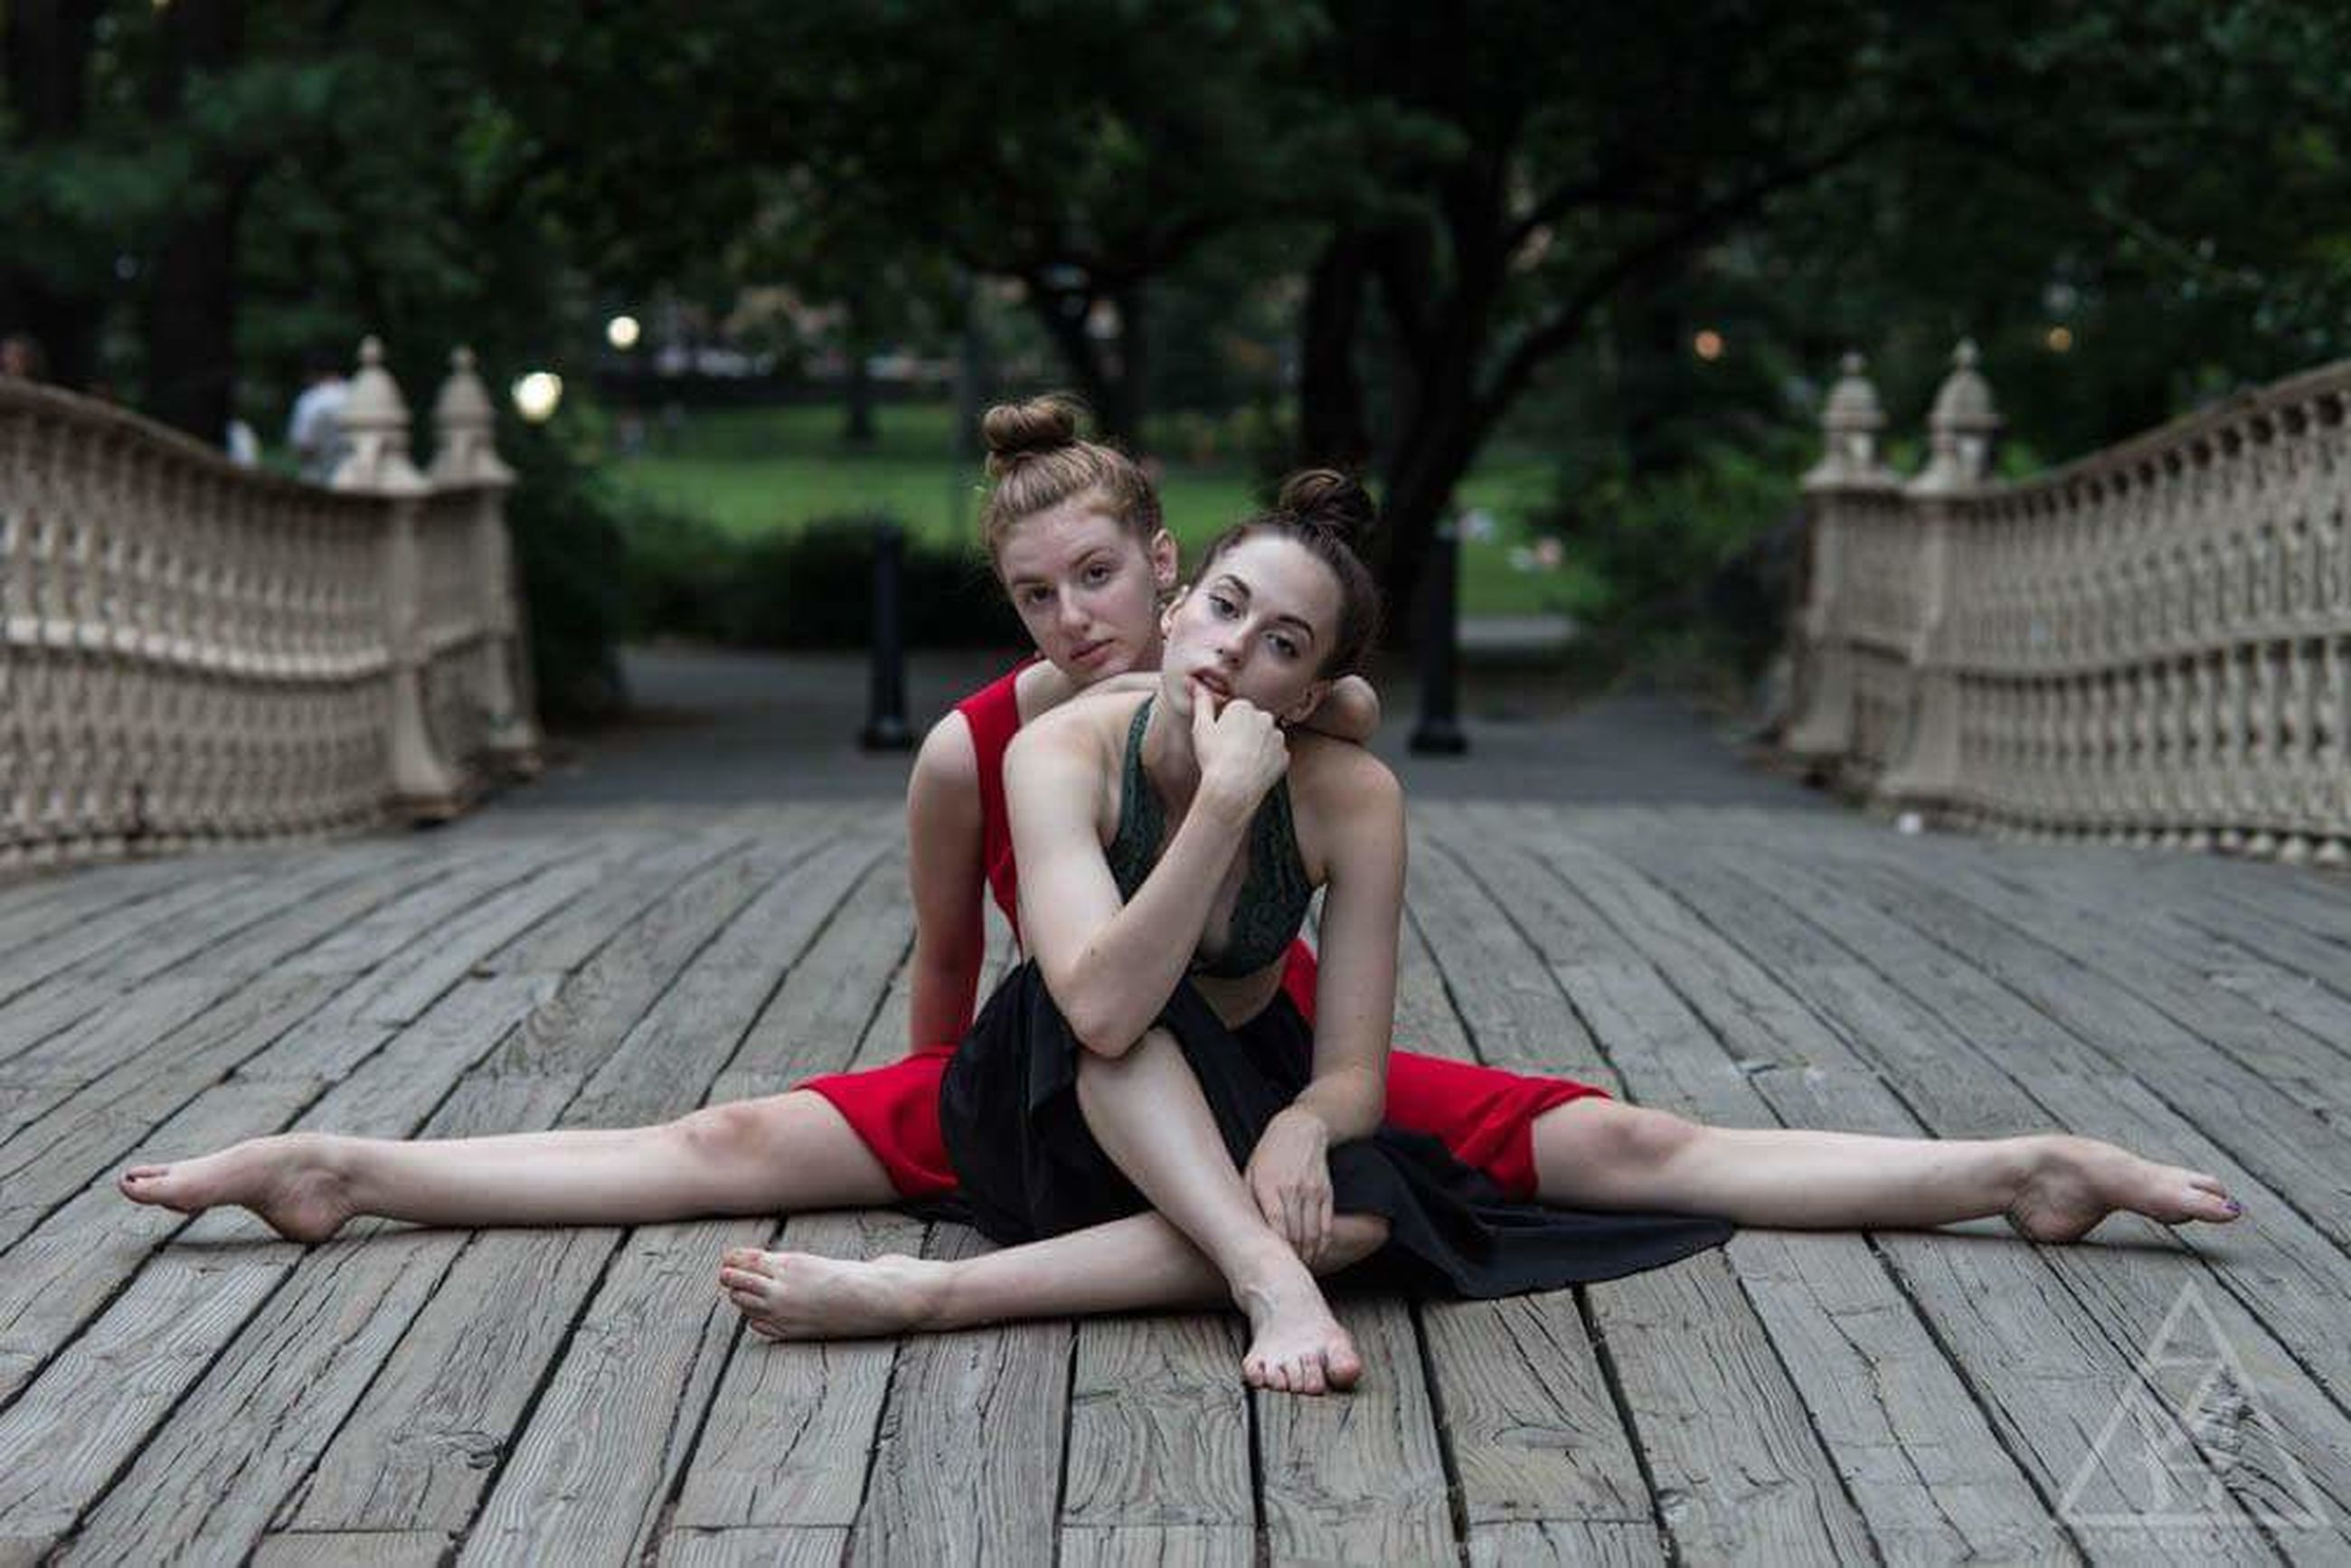 two people, togetherness, smiling, full length, red, sitting, outdoors, teenager, child, happiness, childhood, girls, ballet, summer, exercising, people, young women, ballet dancer, day, looking at camera, young adult, females, friendship, portrait, beauty, flexibility, adult